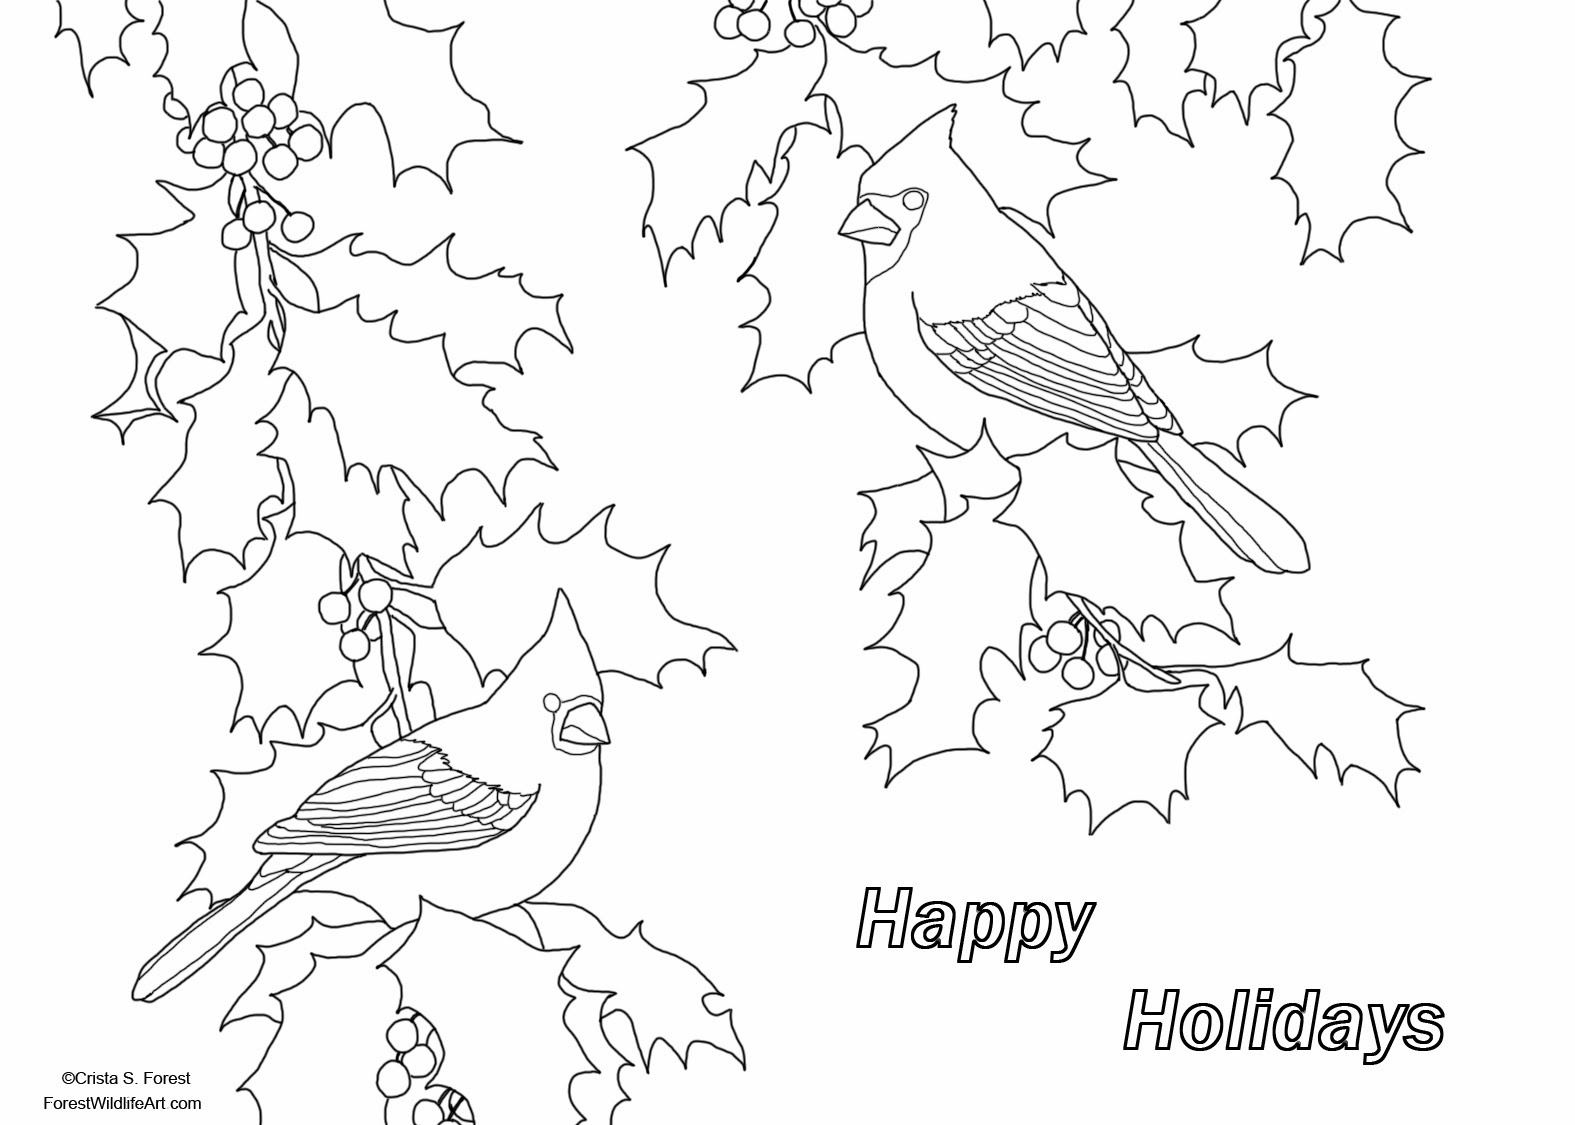 Crista Forest's Animals & Art: Holiday Greeting Coloring